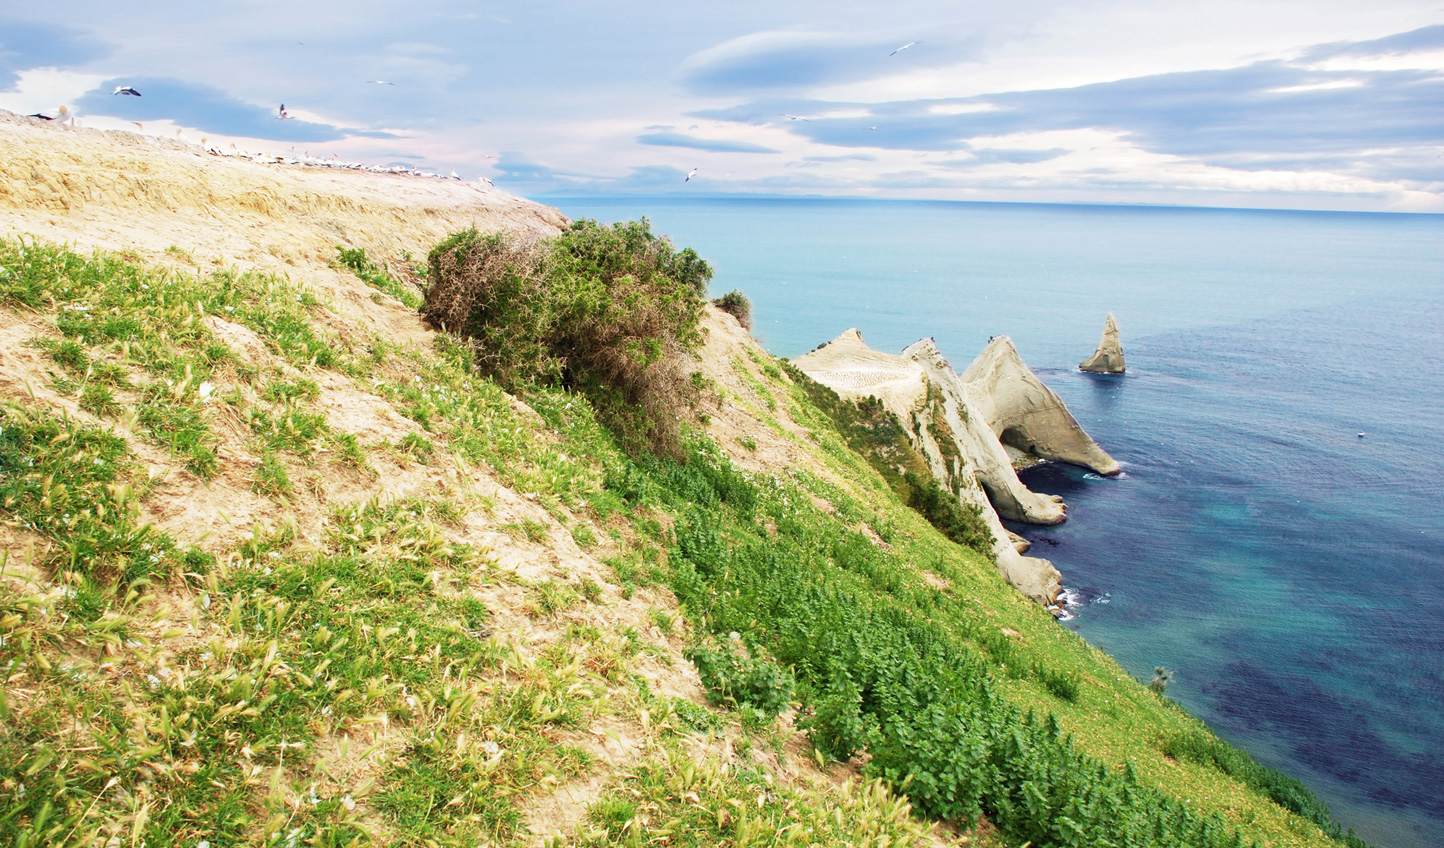 Venture out to Cape Kidnappers